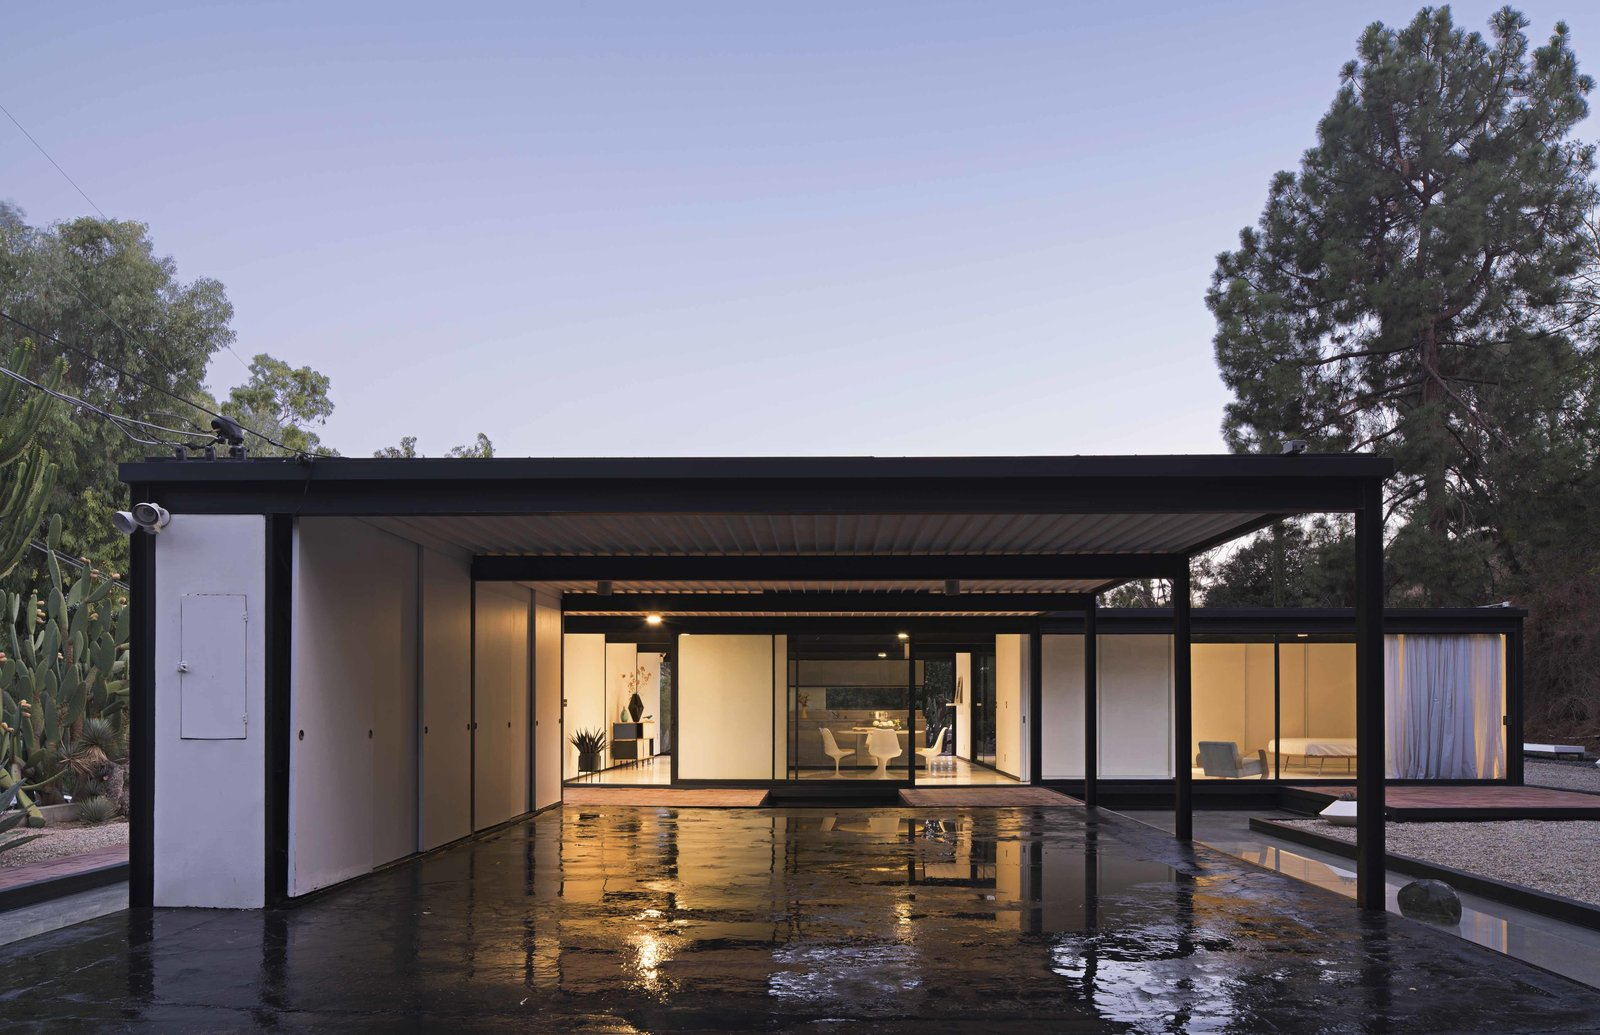 Exterior and House Building Type Lesser known but equally stunning is Pierre Koenig's Bailey House, Case Study House #21. A simple one-story box with a flat roof, built mostly of steel and glass, Koenig achieved his goal of designing a home which was both affordable and beautiful. The Bailey House currently houses Seomi International Gallery which offers visits by appointment.  Photos from Nice architecture